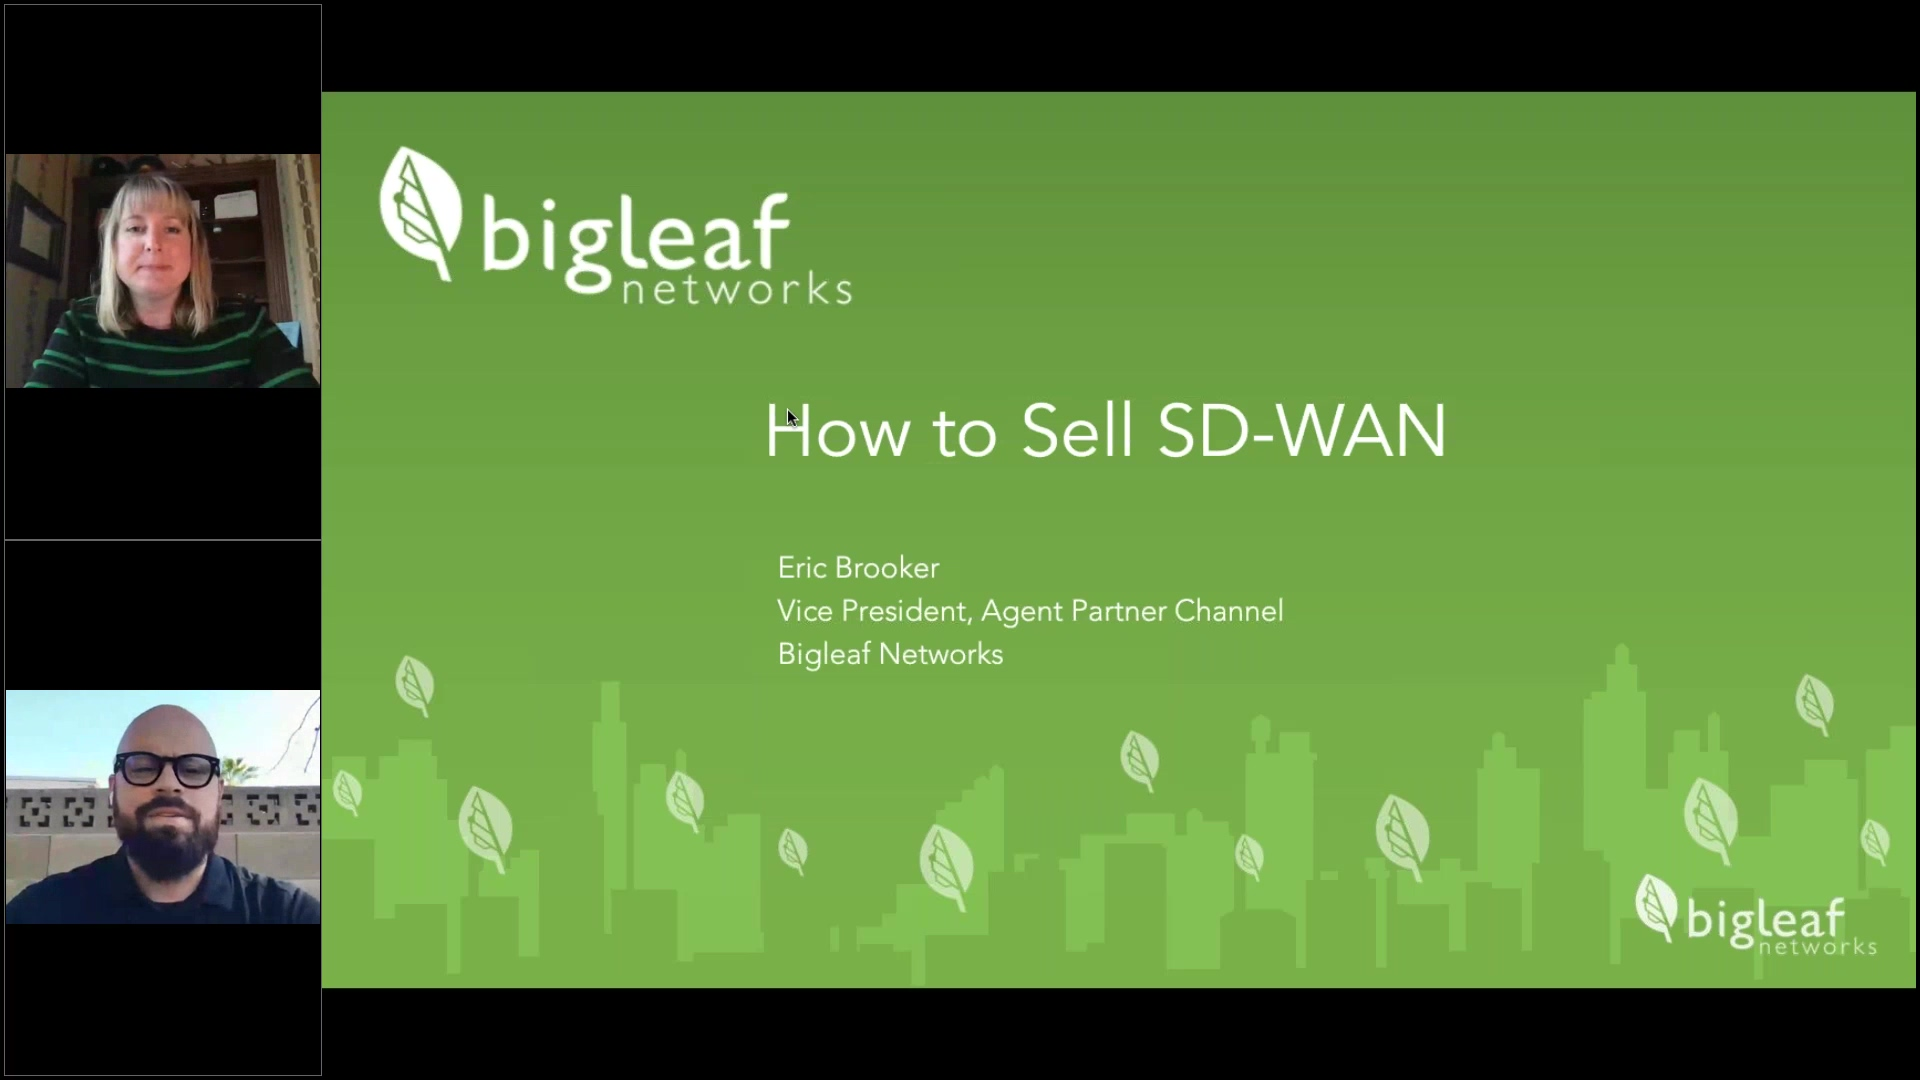 How to Sell SD-WAN